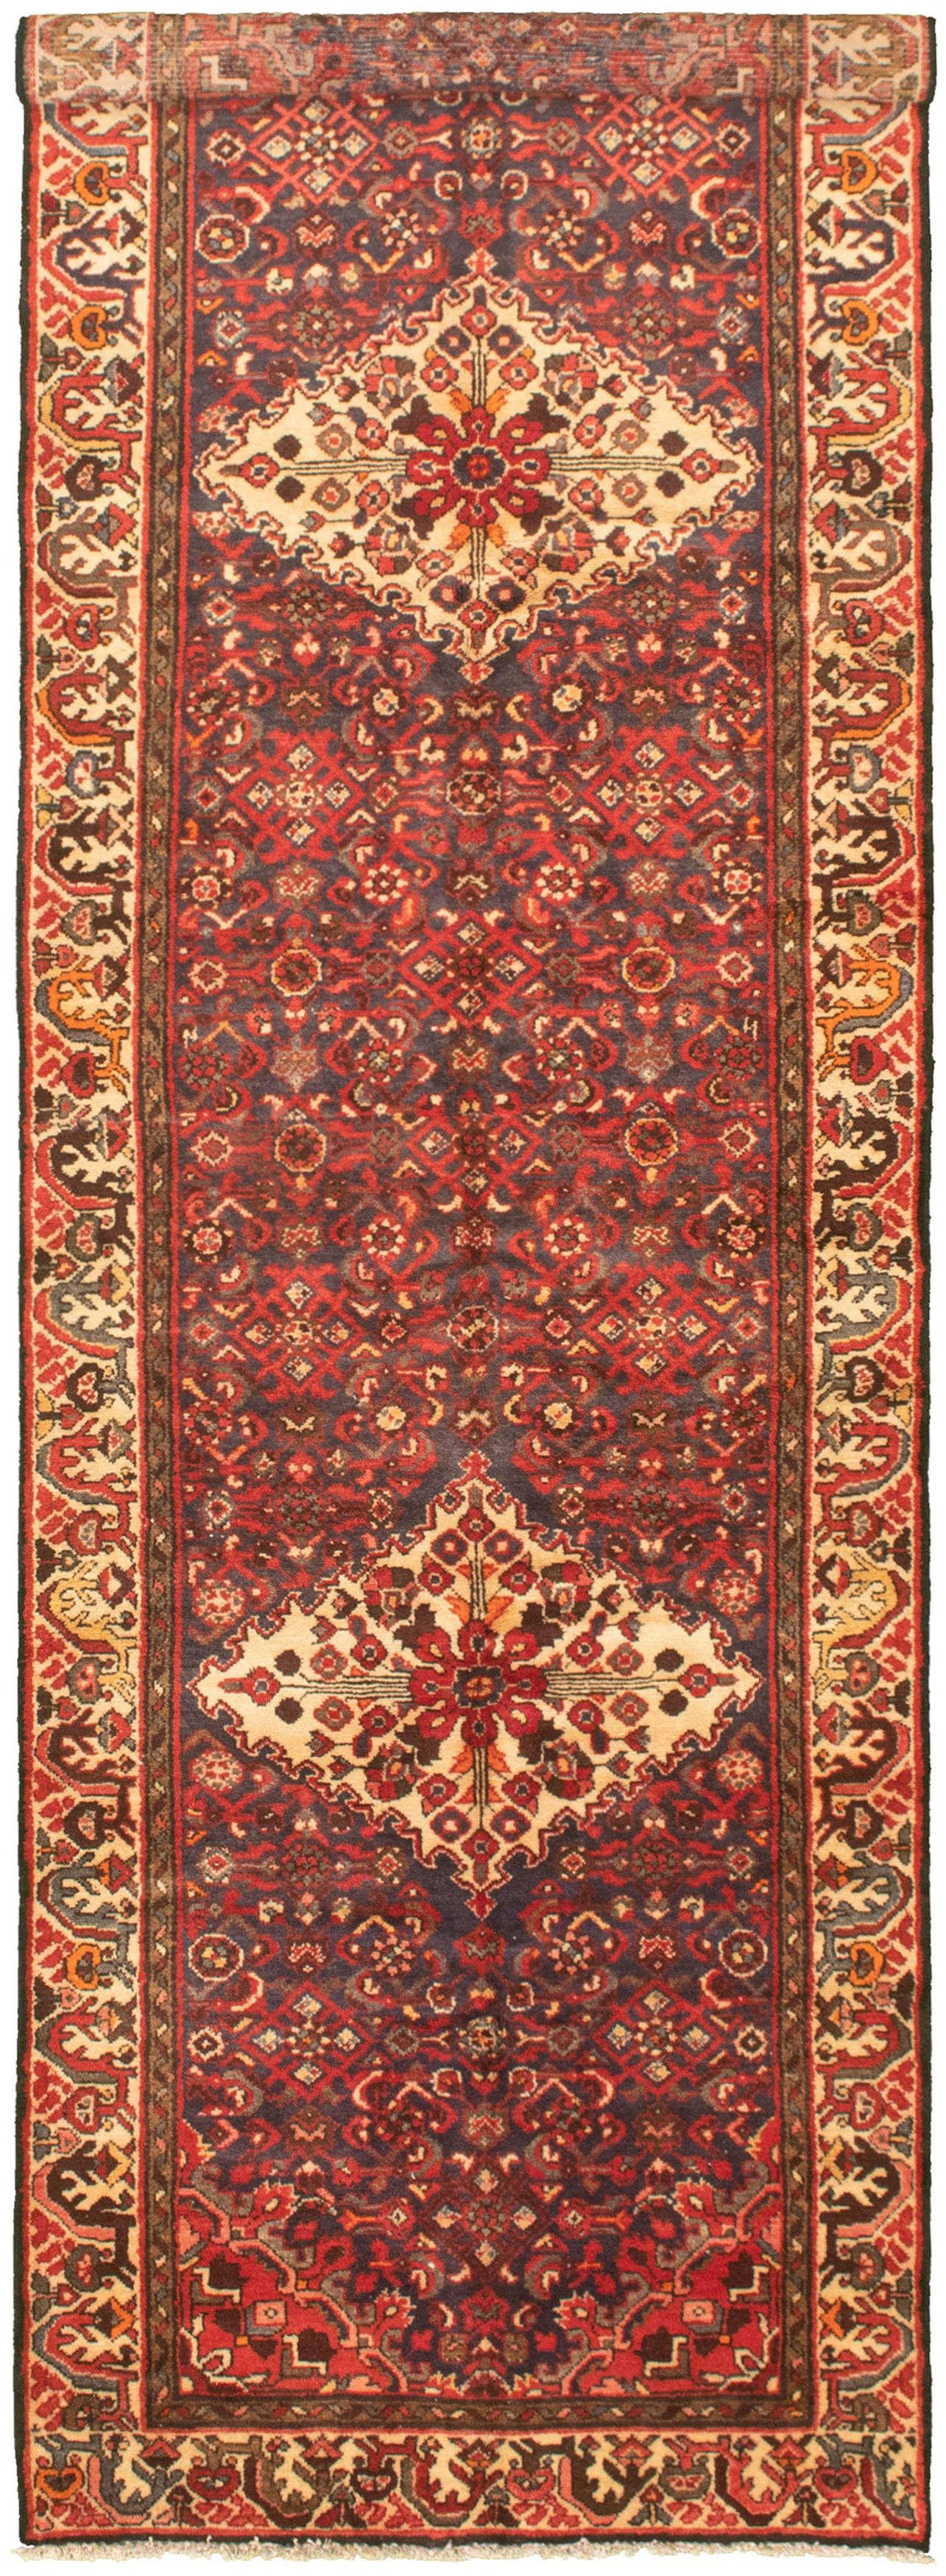 """Hand-knotted Authentic Turkish Navy Blue Wool Rug 3'2"""" x 10'10"""" Size: 3'2"""" x 10'10"""""""